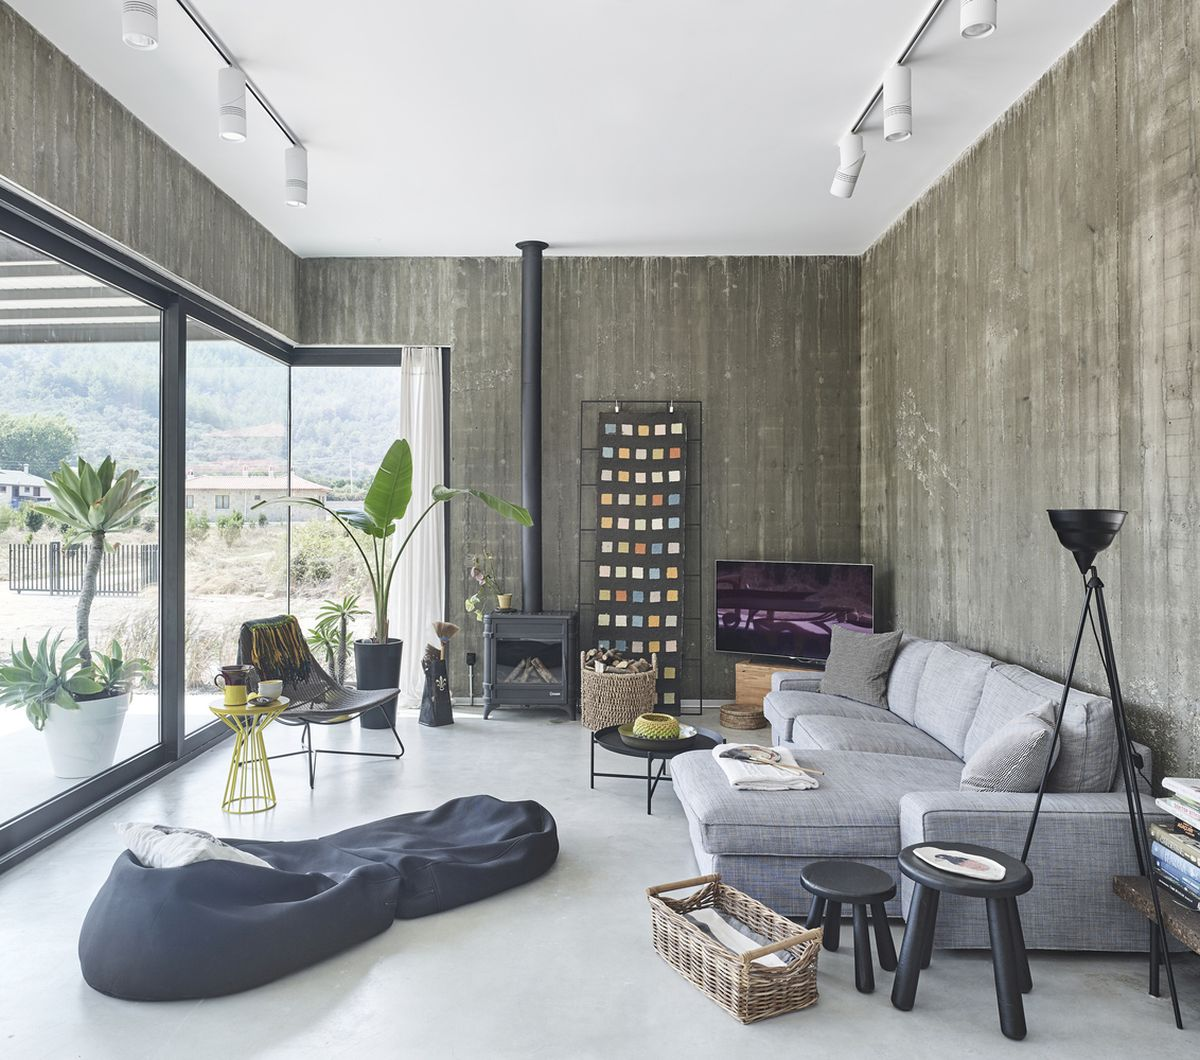 The living room is done with a hearth, a sectional sofa, bean bag chairs, a potted plant and a glazed wall for much light and views